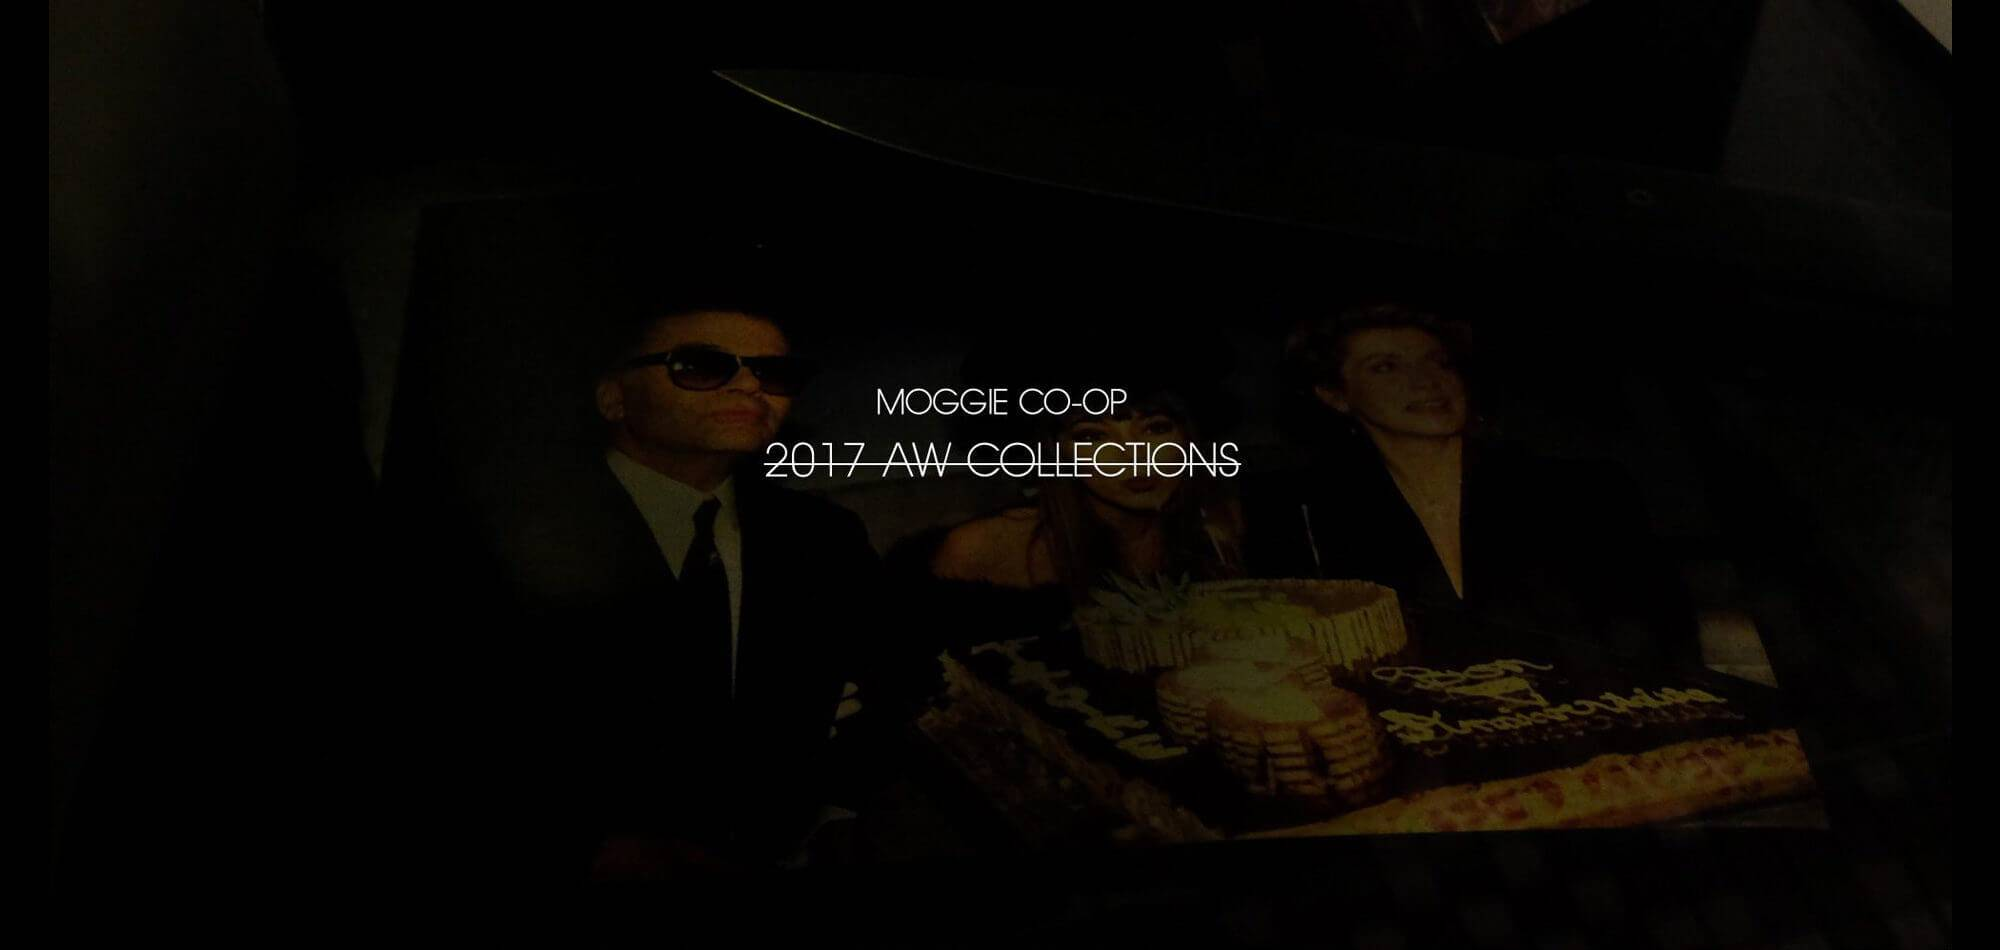 moggie coop 2017aw